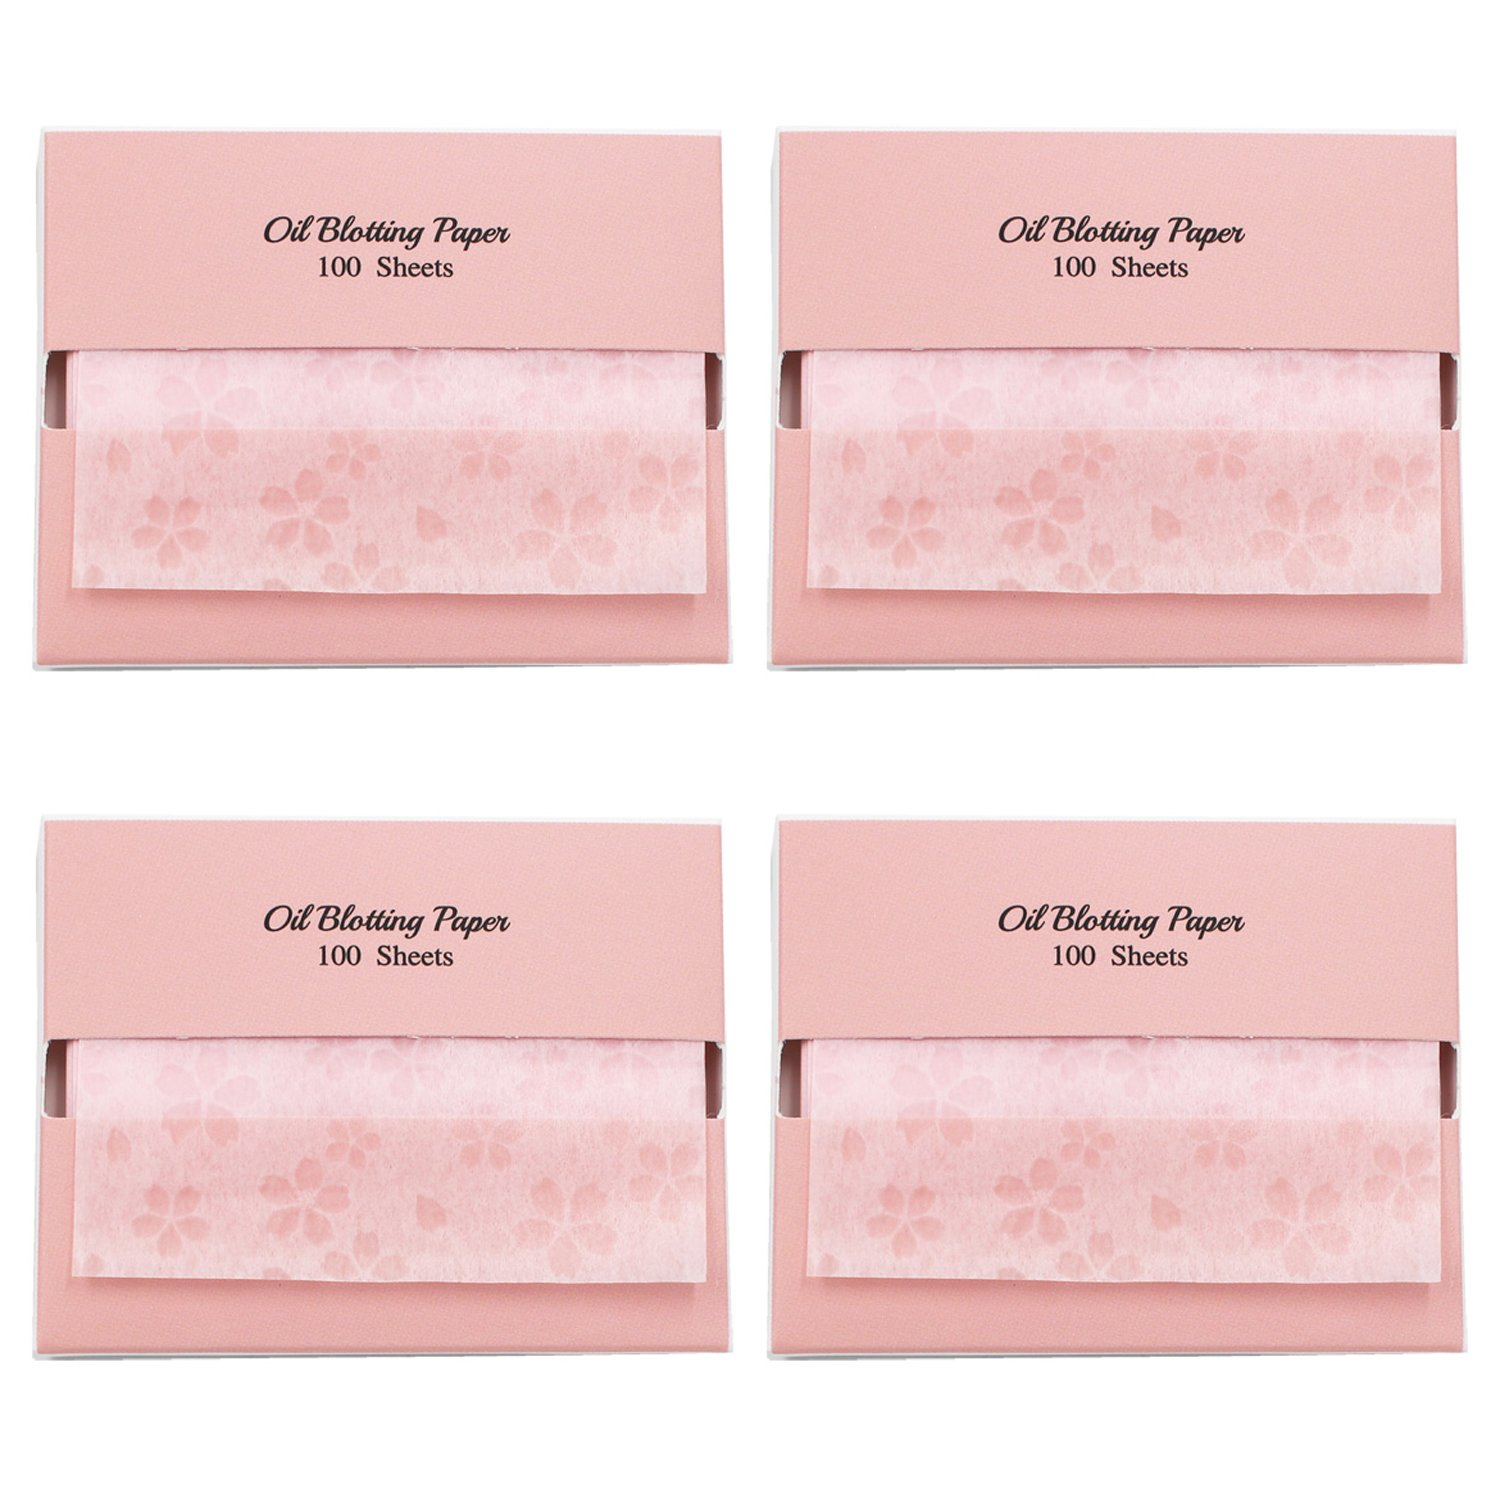 [200 Counts + Mirror Case] Cherry Blossom Face Oil Blotting Paper Sheets with Makeup Mirror - Oil Absorbing Sheets made in Japan Blue & Pink